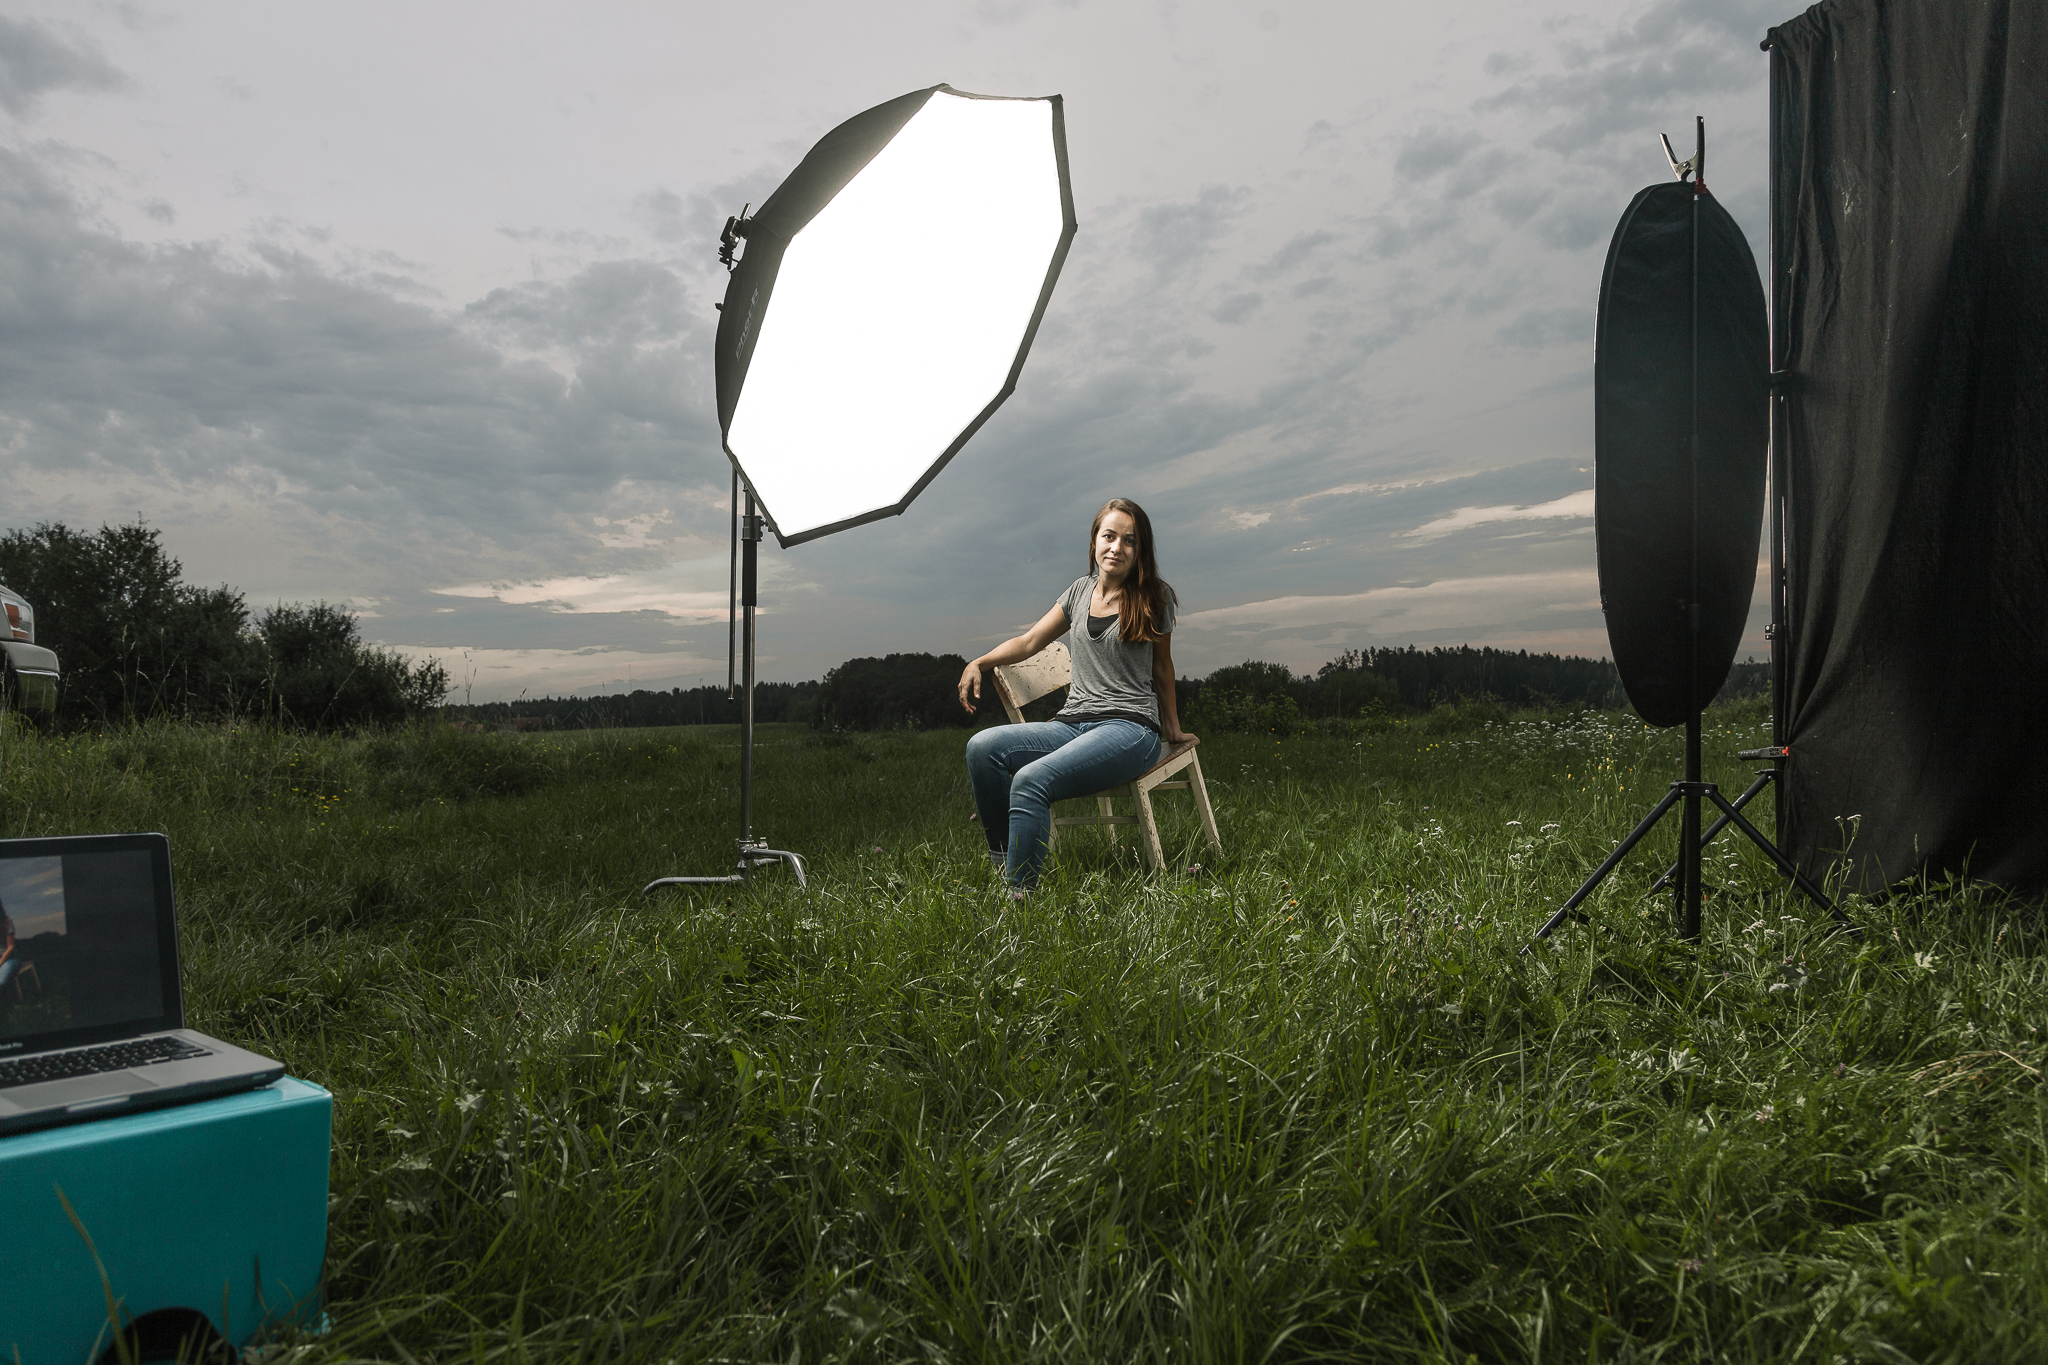 outdoor-onlocation-frankrupprecht-fotoset.jpg